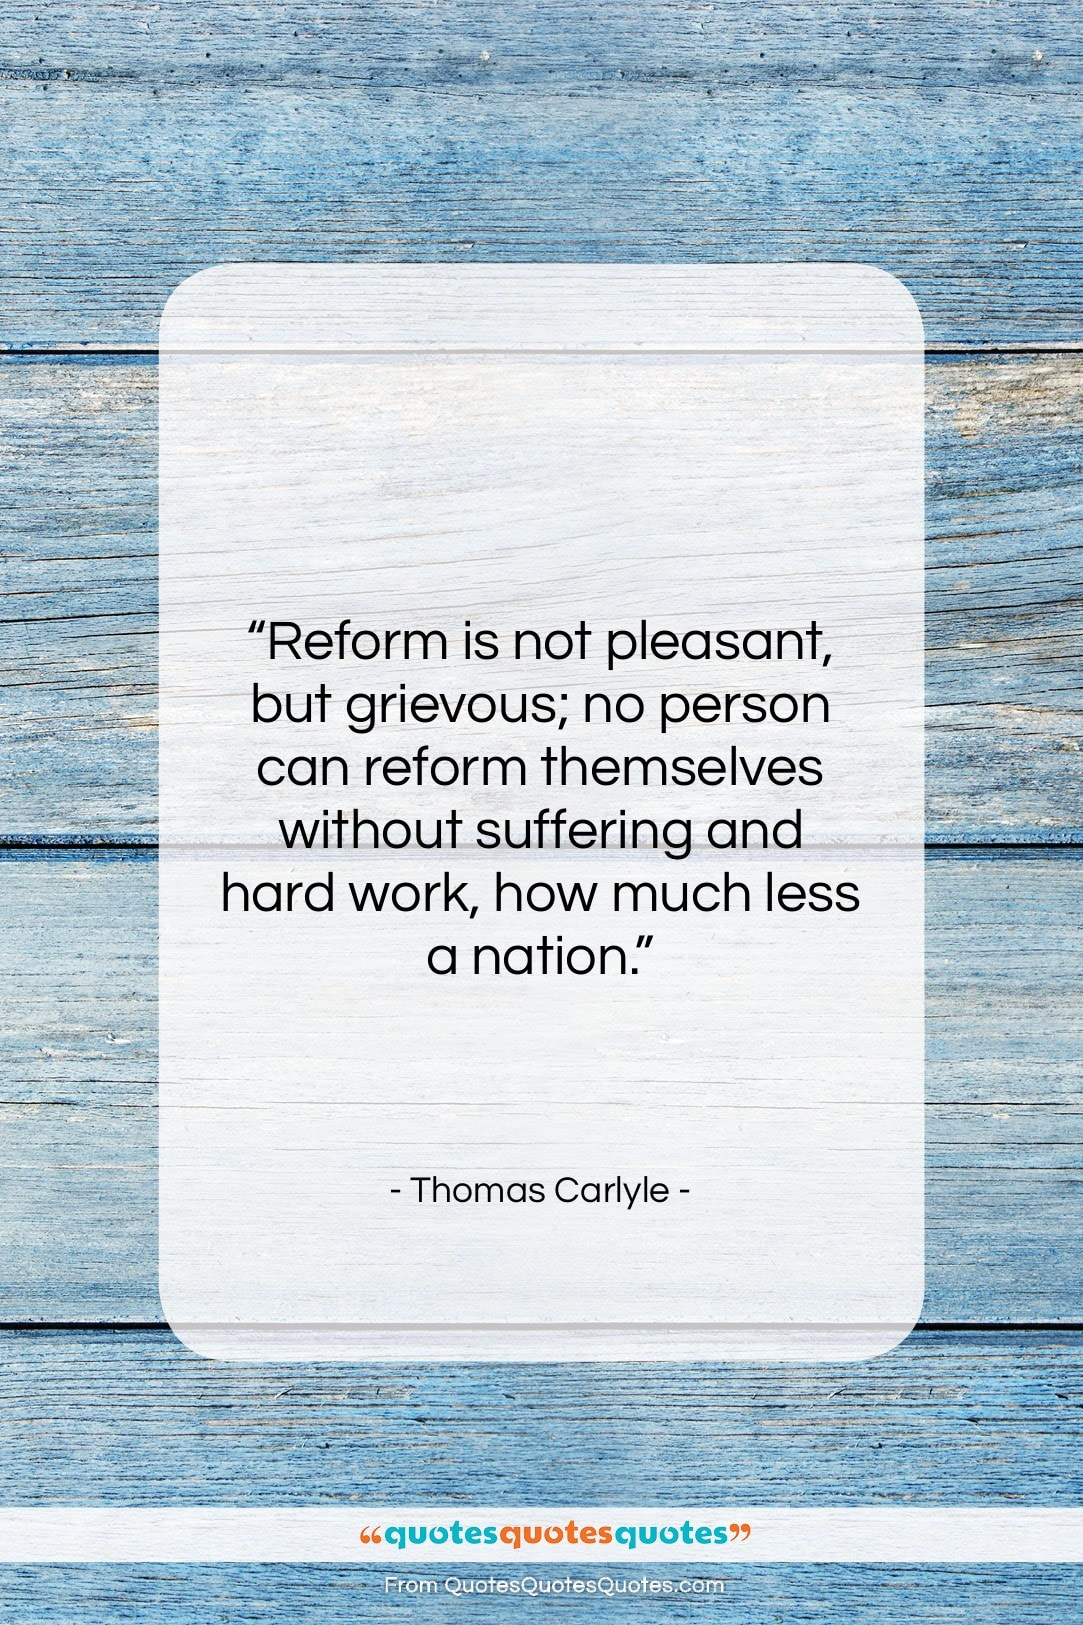 """Thomas Carlyle quote: """"Reform is not pleasant, but grievous; no…""""- at QuotesQuotesQuotes.com"""